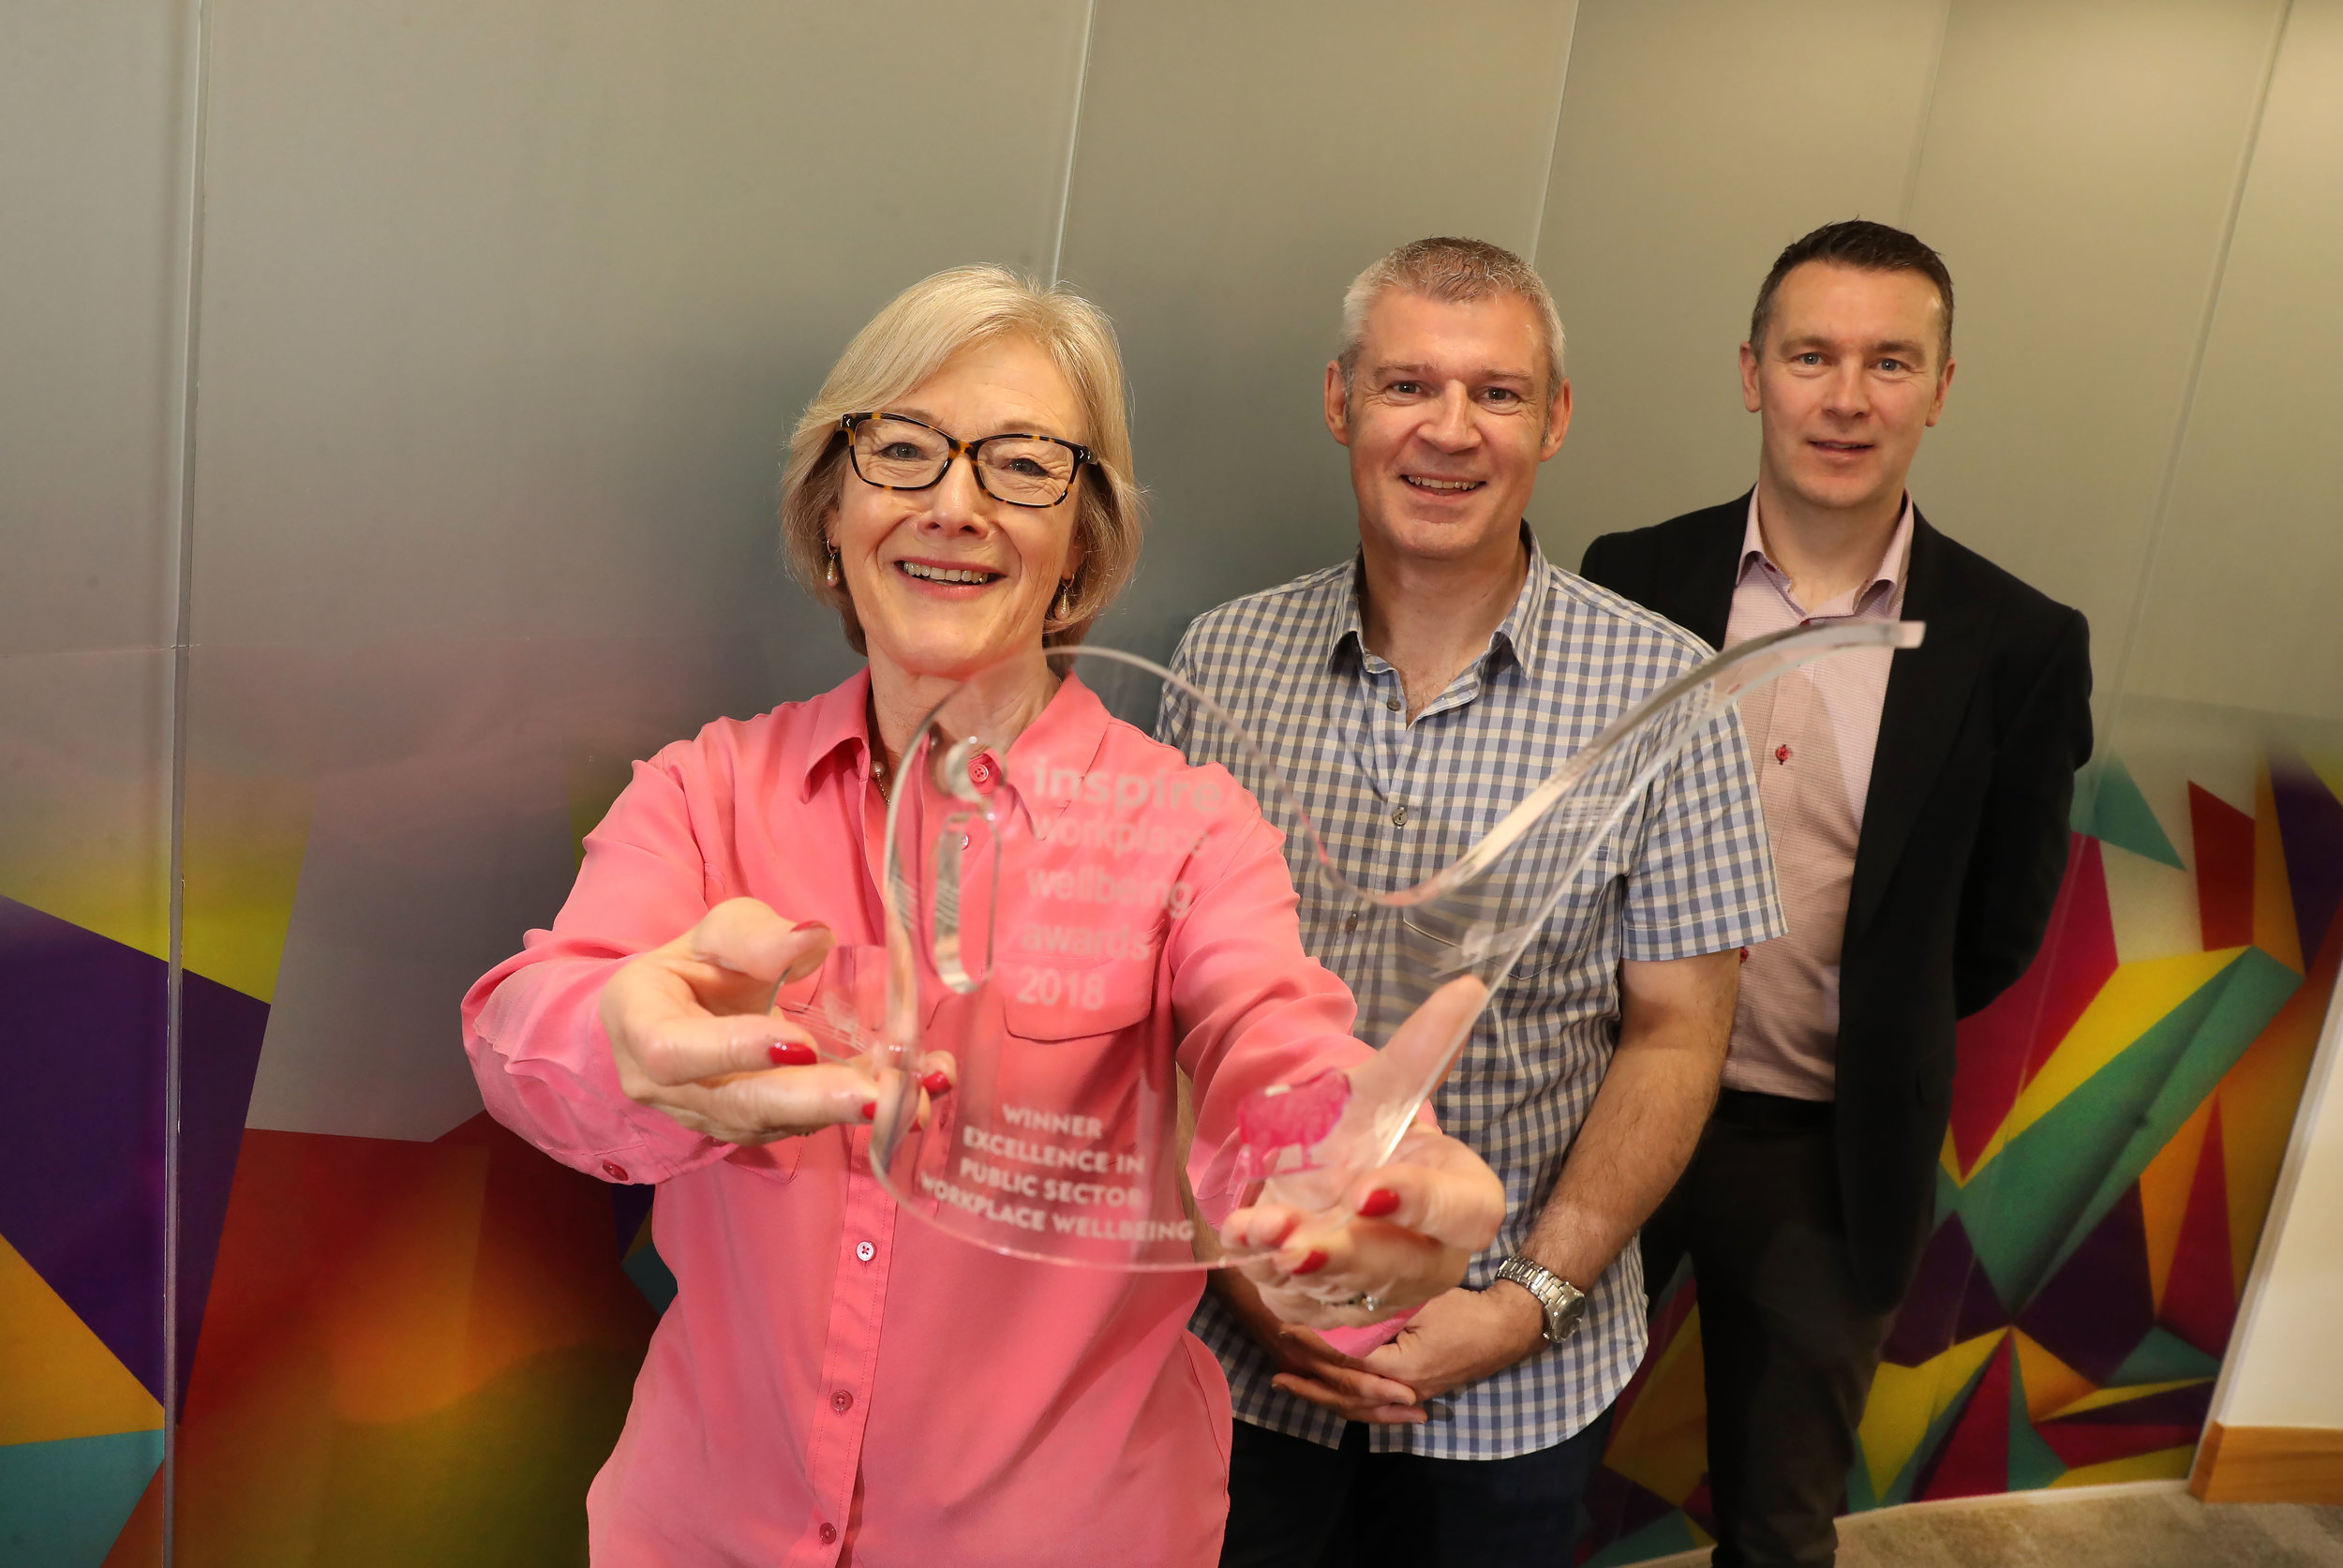 Broadcaster Wendy Austin teams up with Inspire's Director of Professional Services John Conaghan, and former GAA star Oisin McConville       to launch Inspire's Workplace Wellbeing Awards. The awards celebrate employers who champion resilience and wellbeing at work and will take place on Thursday 20 June at the Crowne Plaza Hotel.